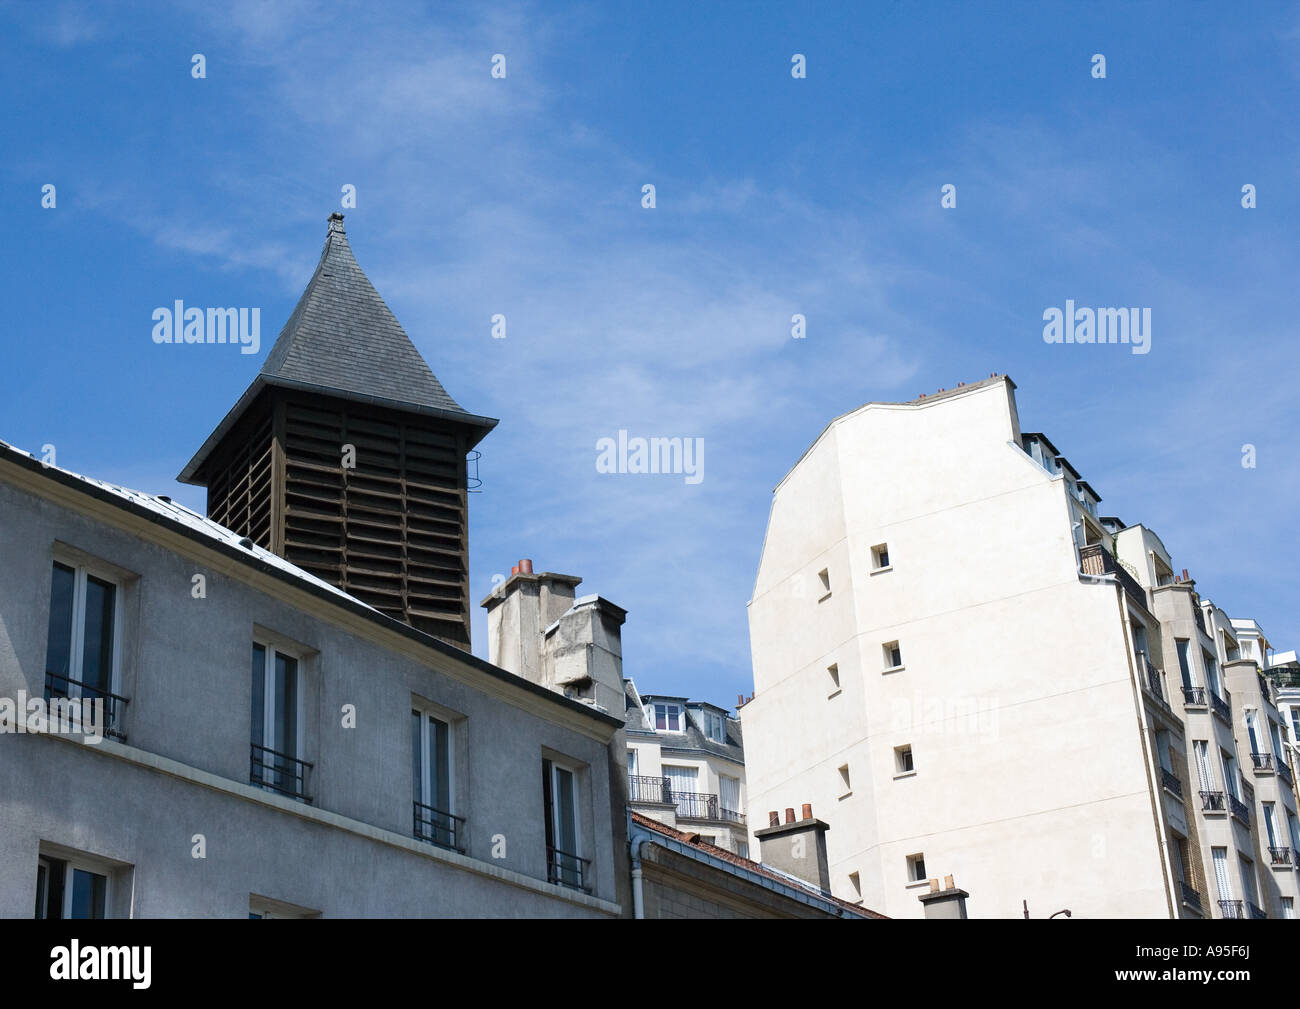 Turret and apartment buildings Stock Photo